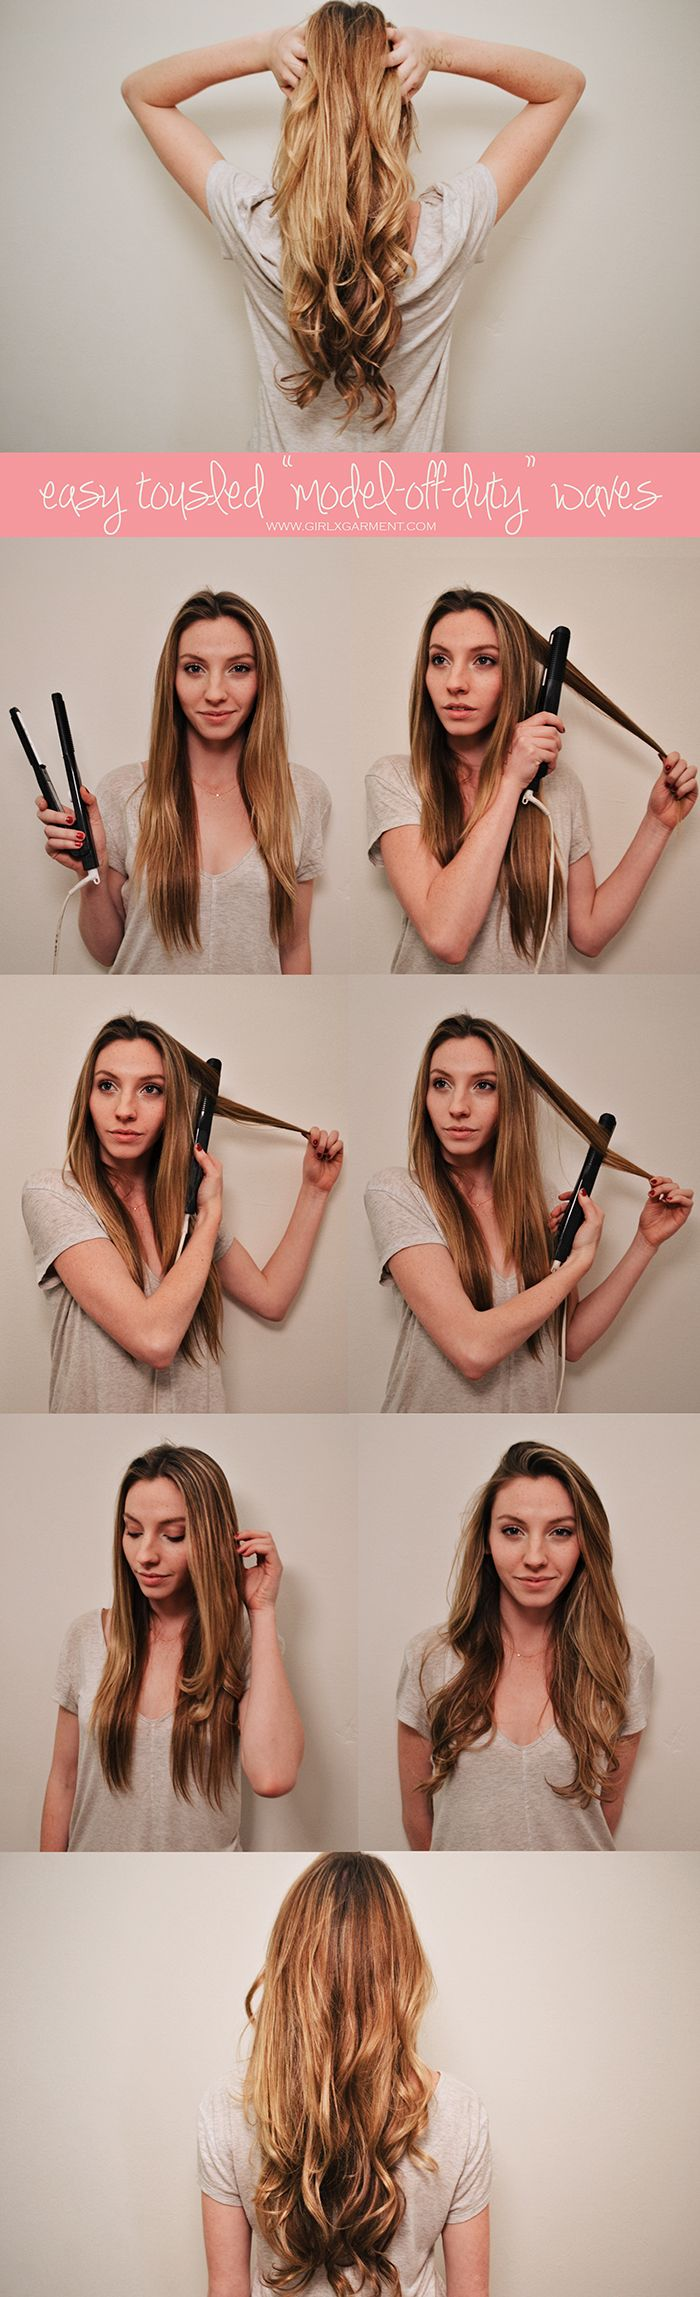 """I'm still surprised at how easy it is to do this. I normally wear my hair  stick-straight, since that's how it is naturally and thus requires zero  effort (aka I can sleep longer), but in the past few weeks I've been using  this super quick & easy trick on the occasional morning before I head to a  casting. And, while I do feel like I've gotten one step closer to achieving  that Kate Moss-esque """"model off duty"""" hair, the real reason why I've  continued to do it is because this takes me ..."""